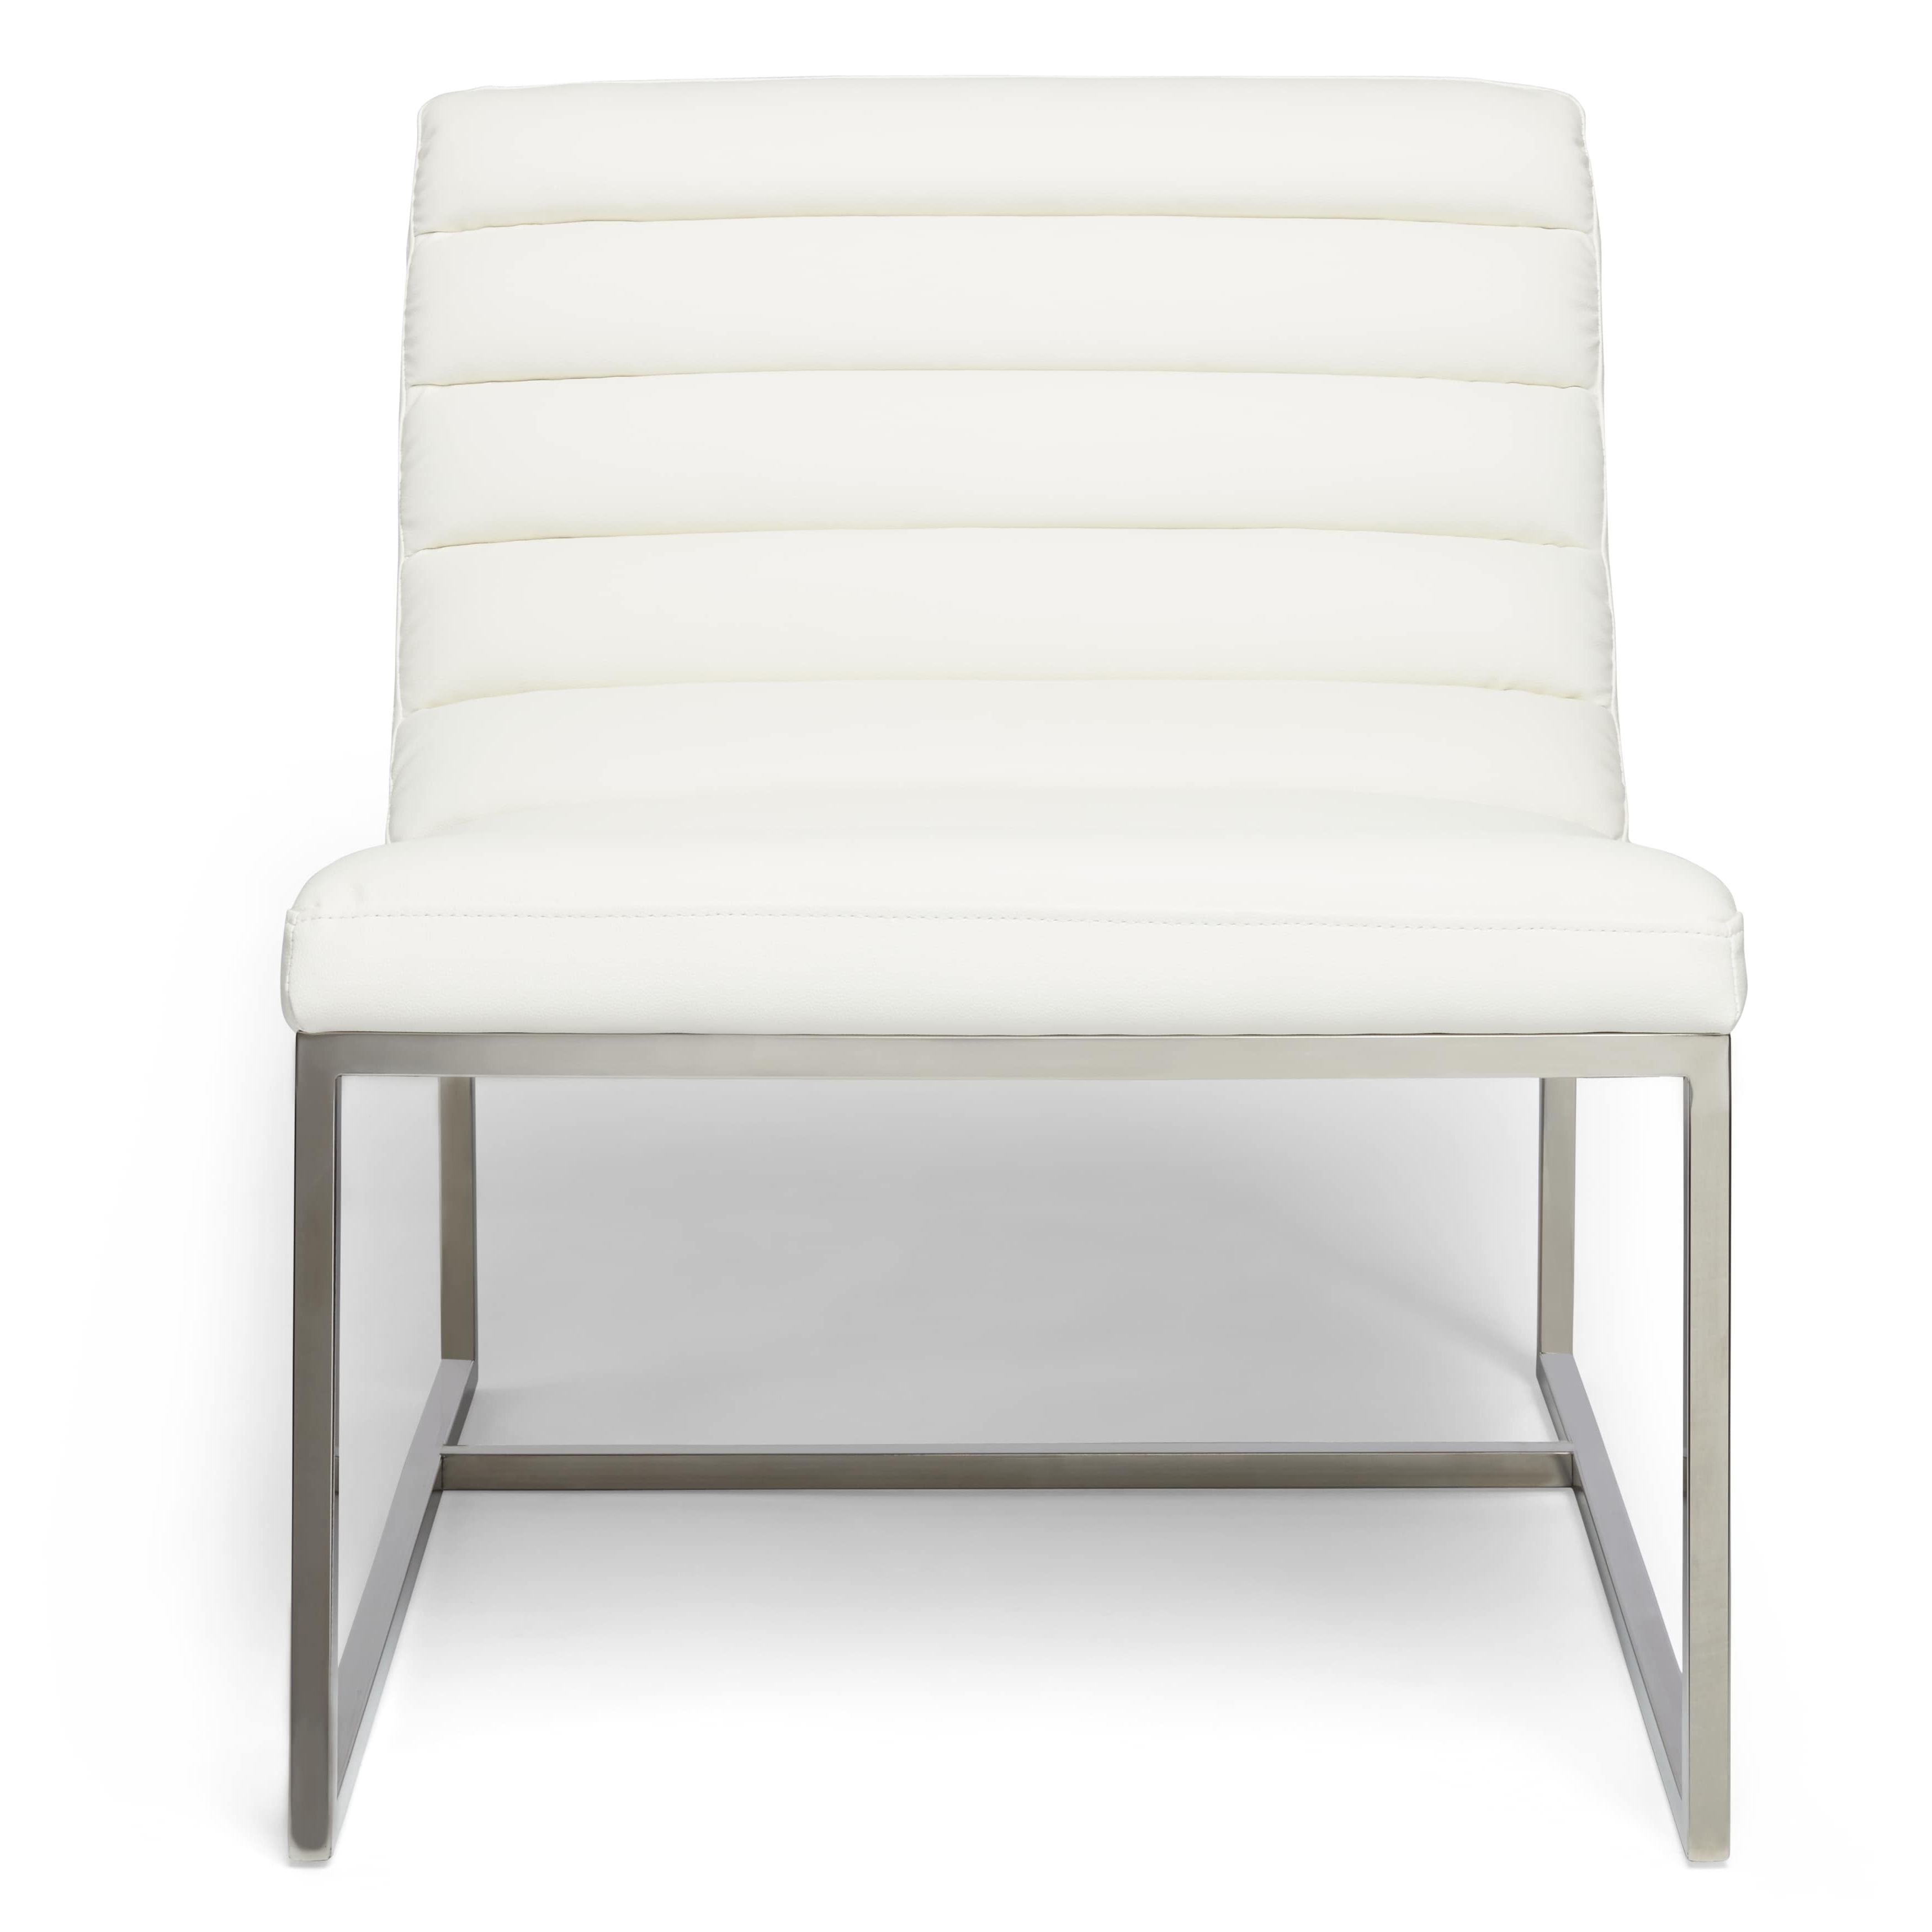 White Sofa Chairs Pertaining To Most Recently Released Parisian White Leather Sofa Chairchristopher Knight Home (View 19 of 20)